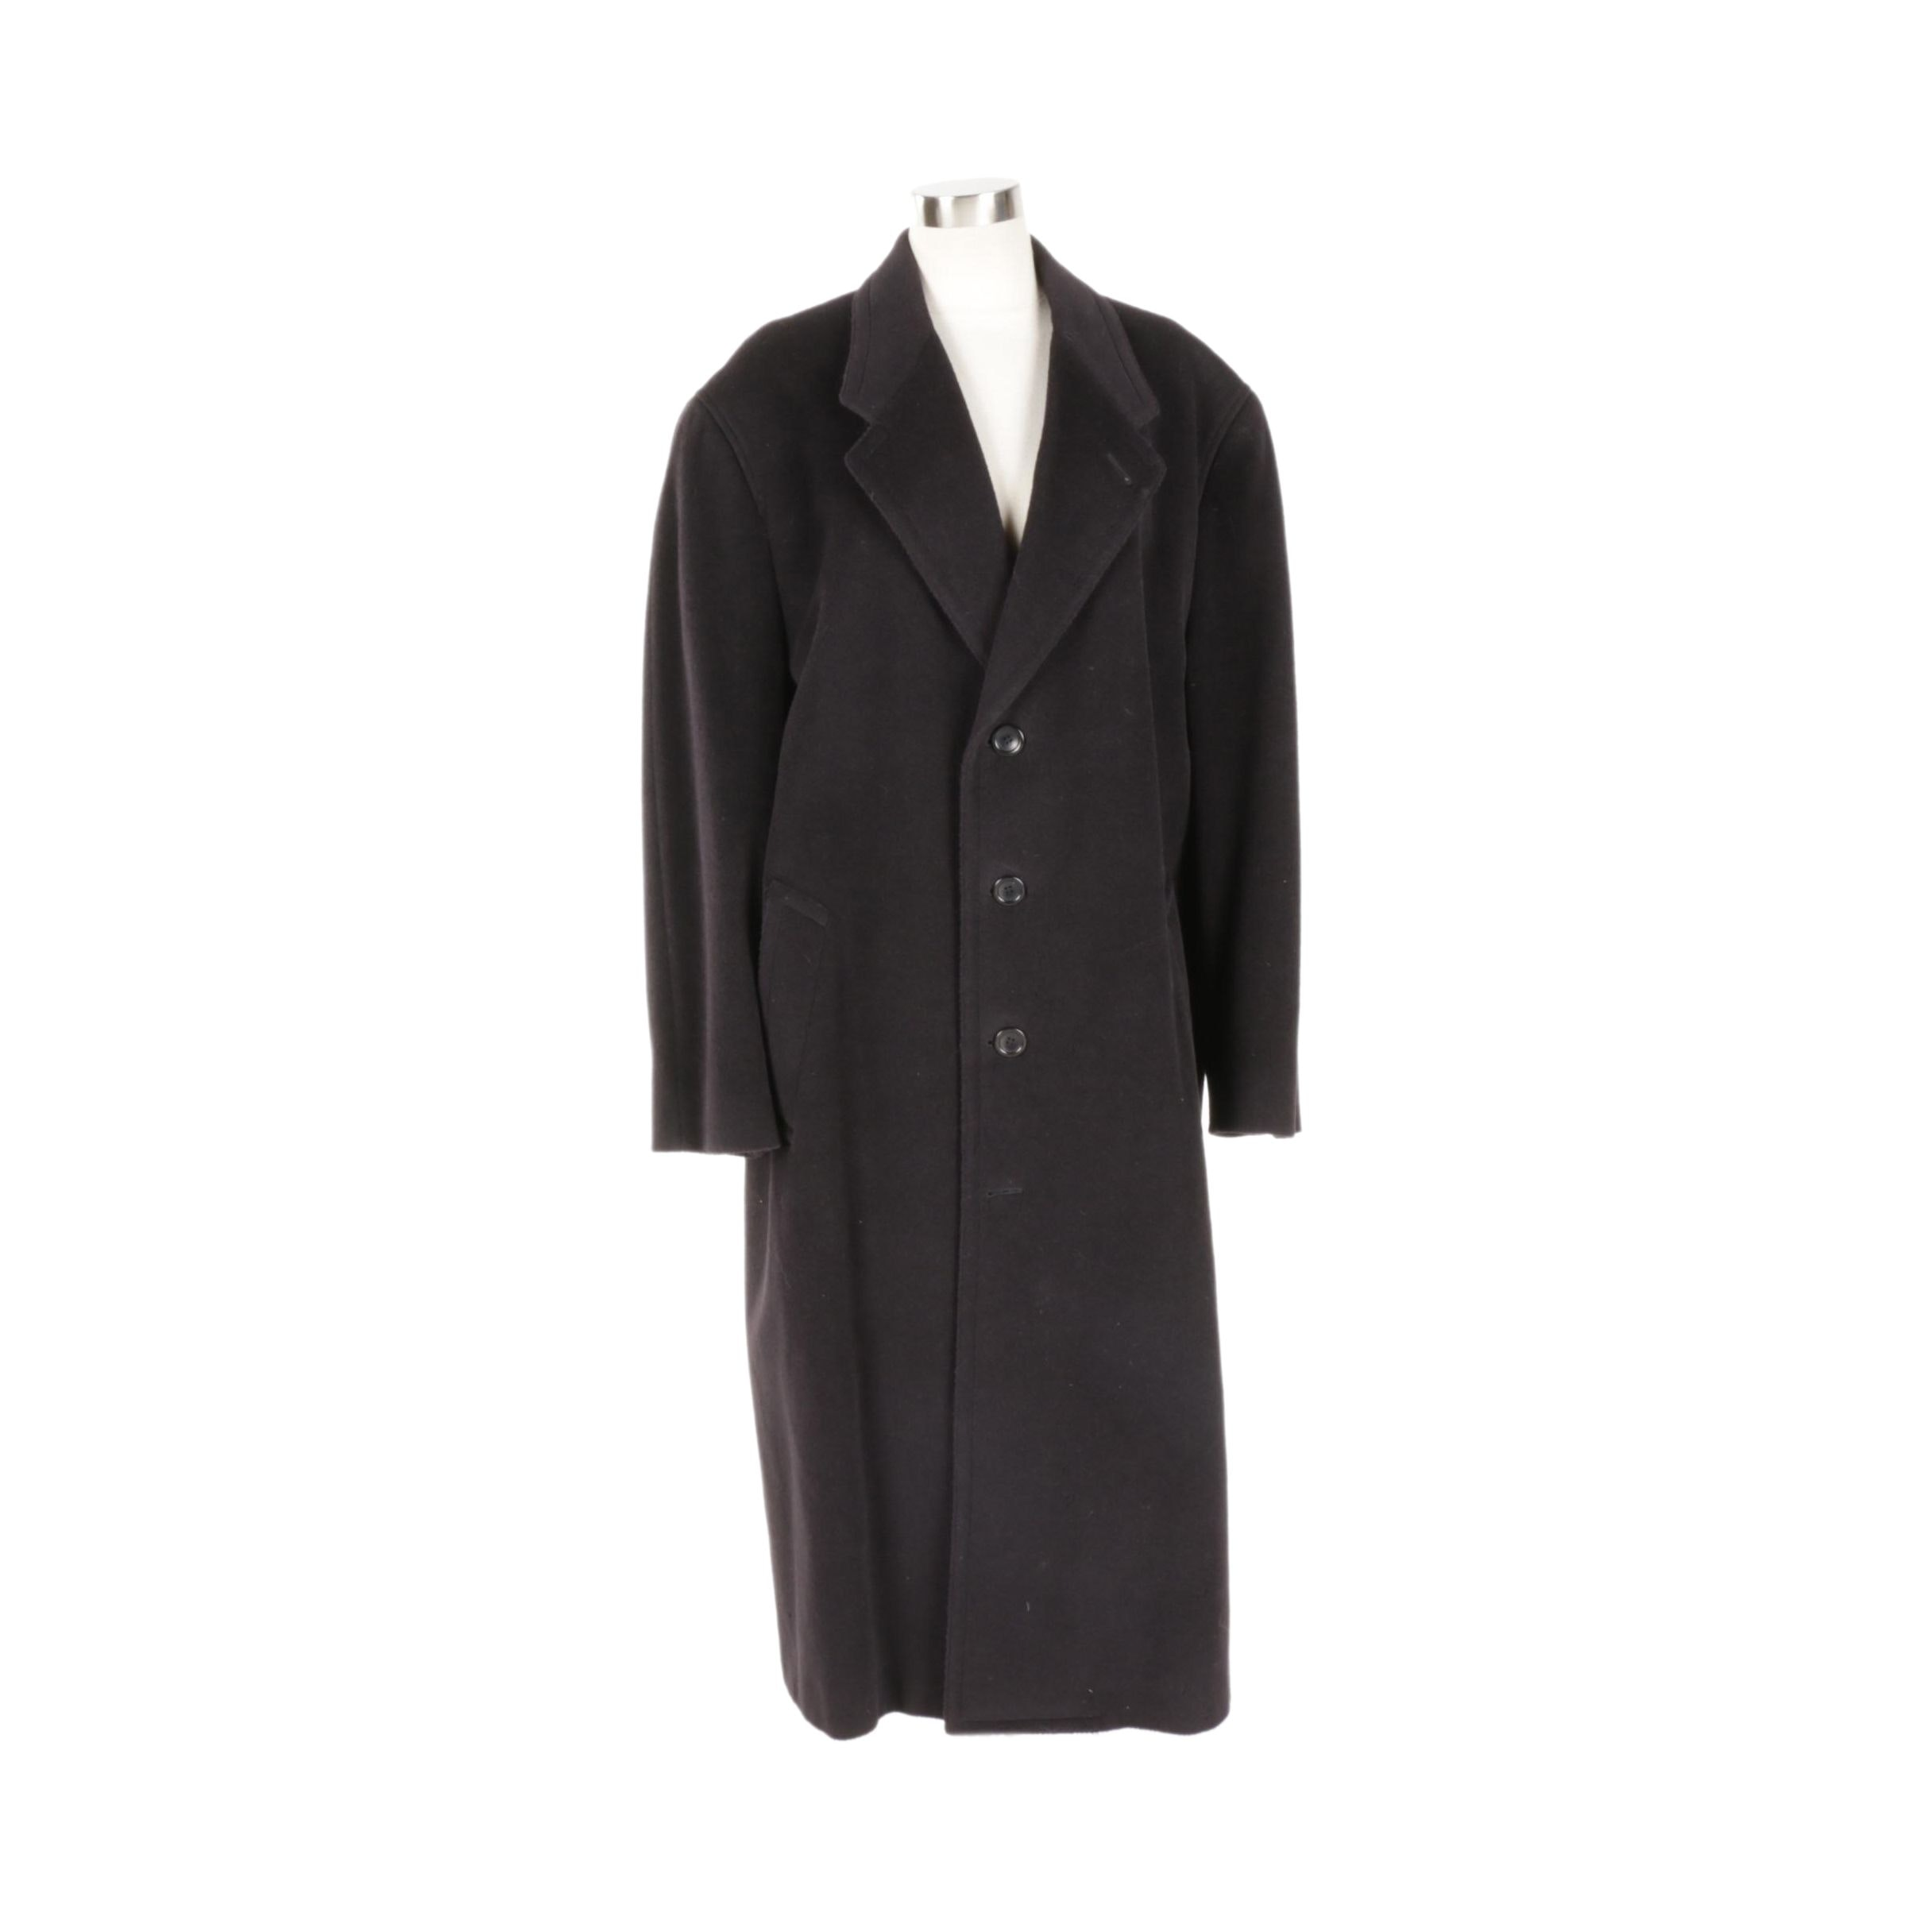 Men's Canali Proposta Black Wool Blend Coat